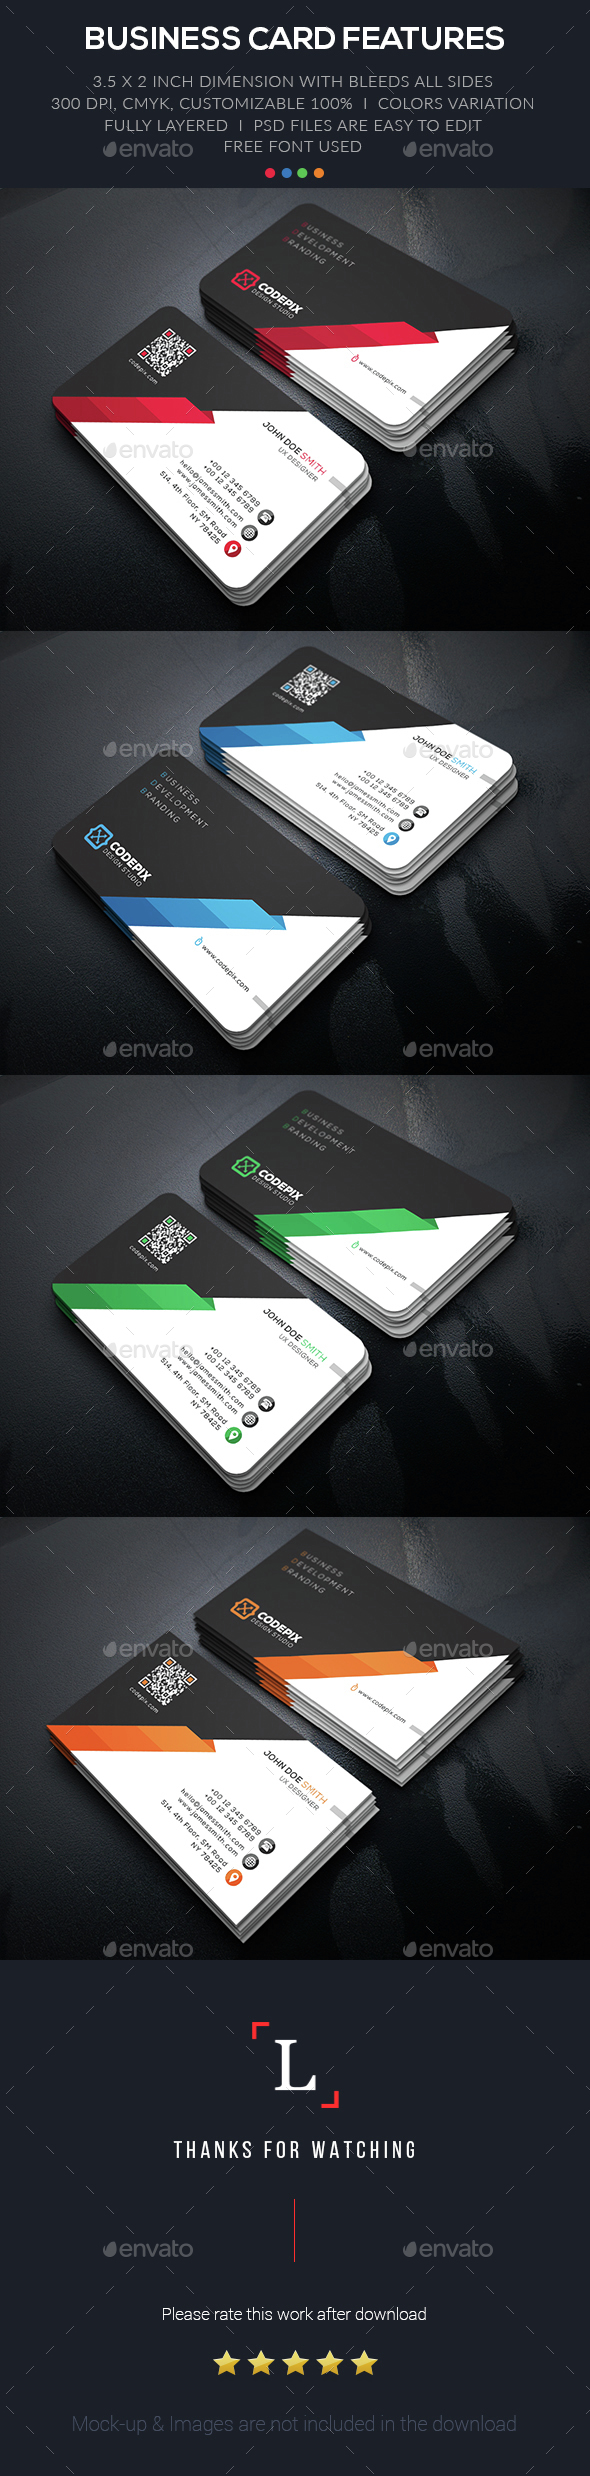 Shape Corporate Business Card - Business Cards Print Templates